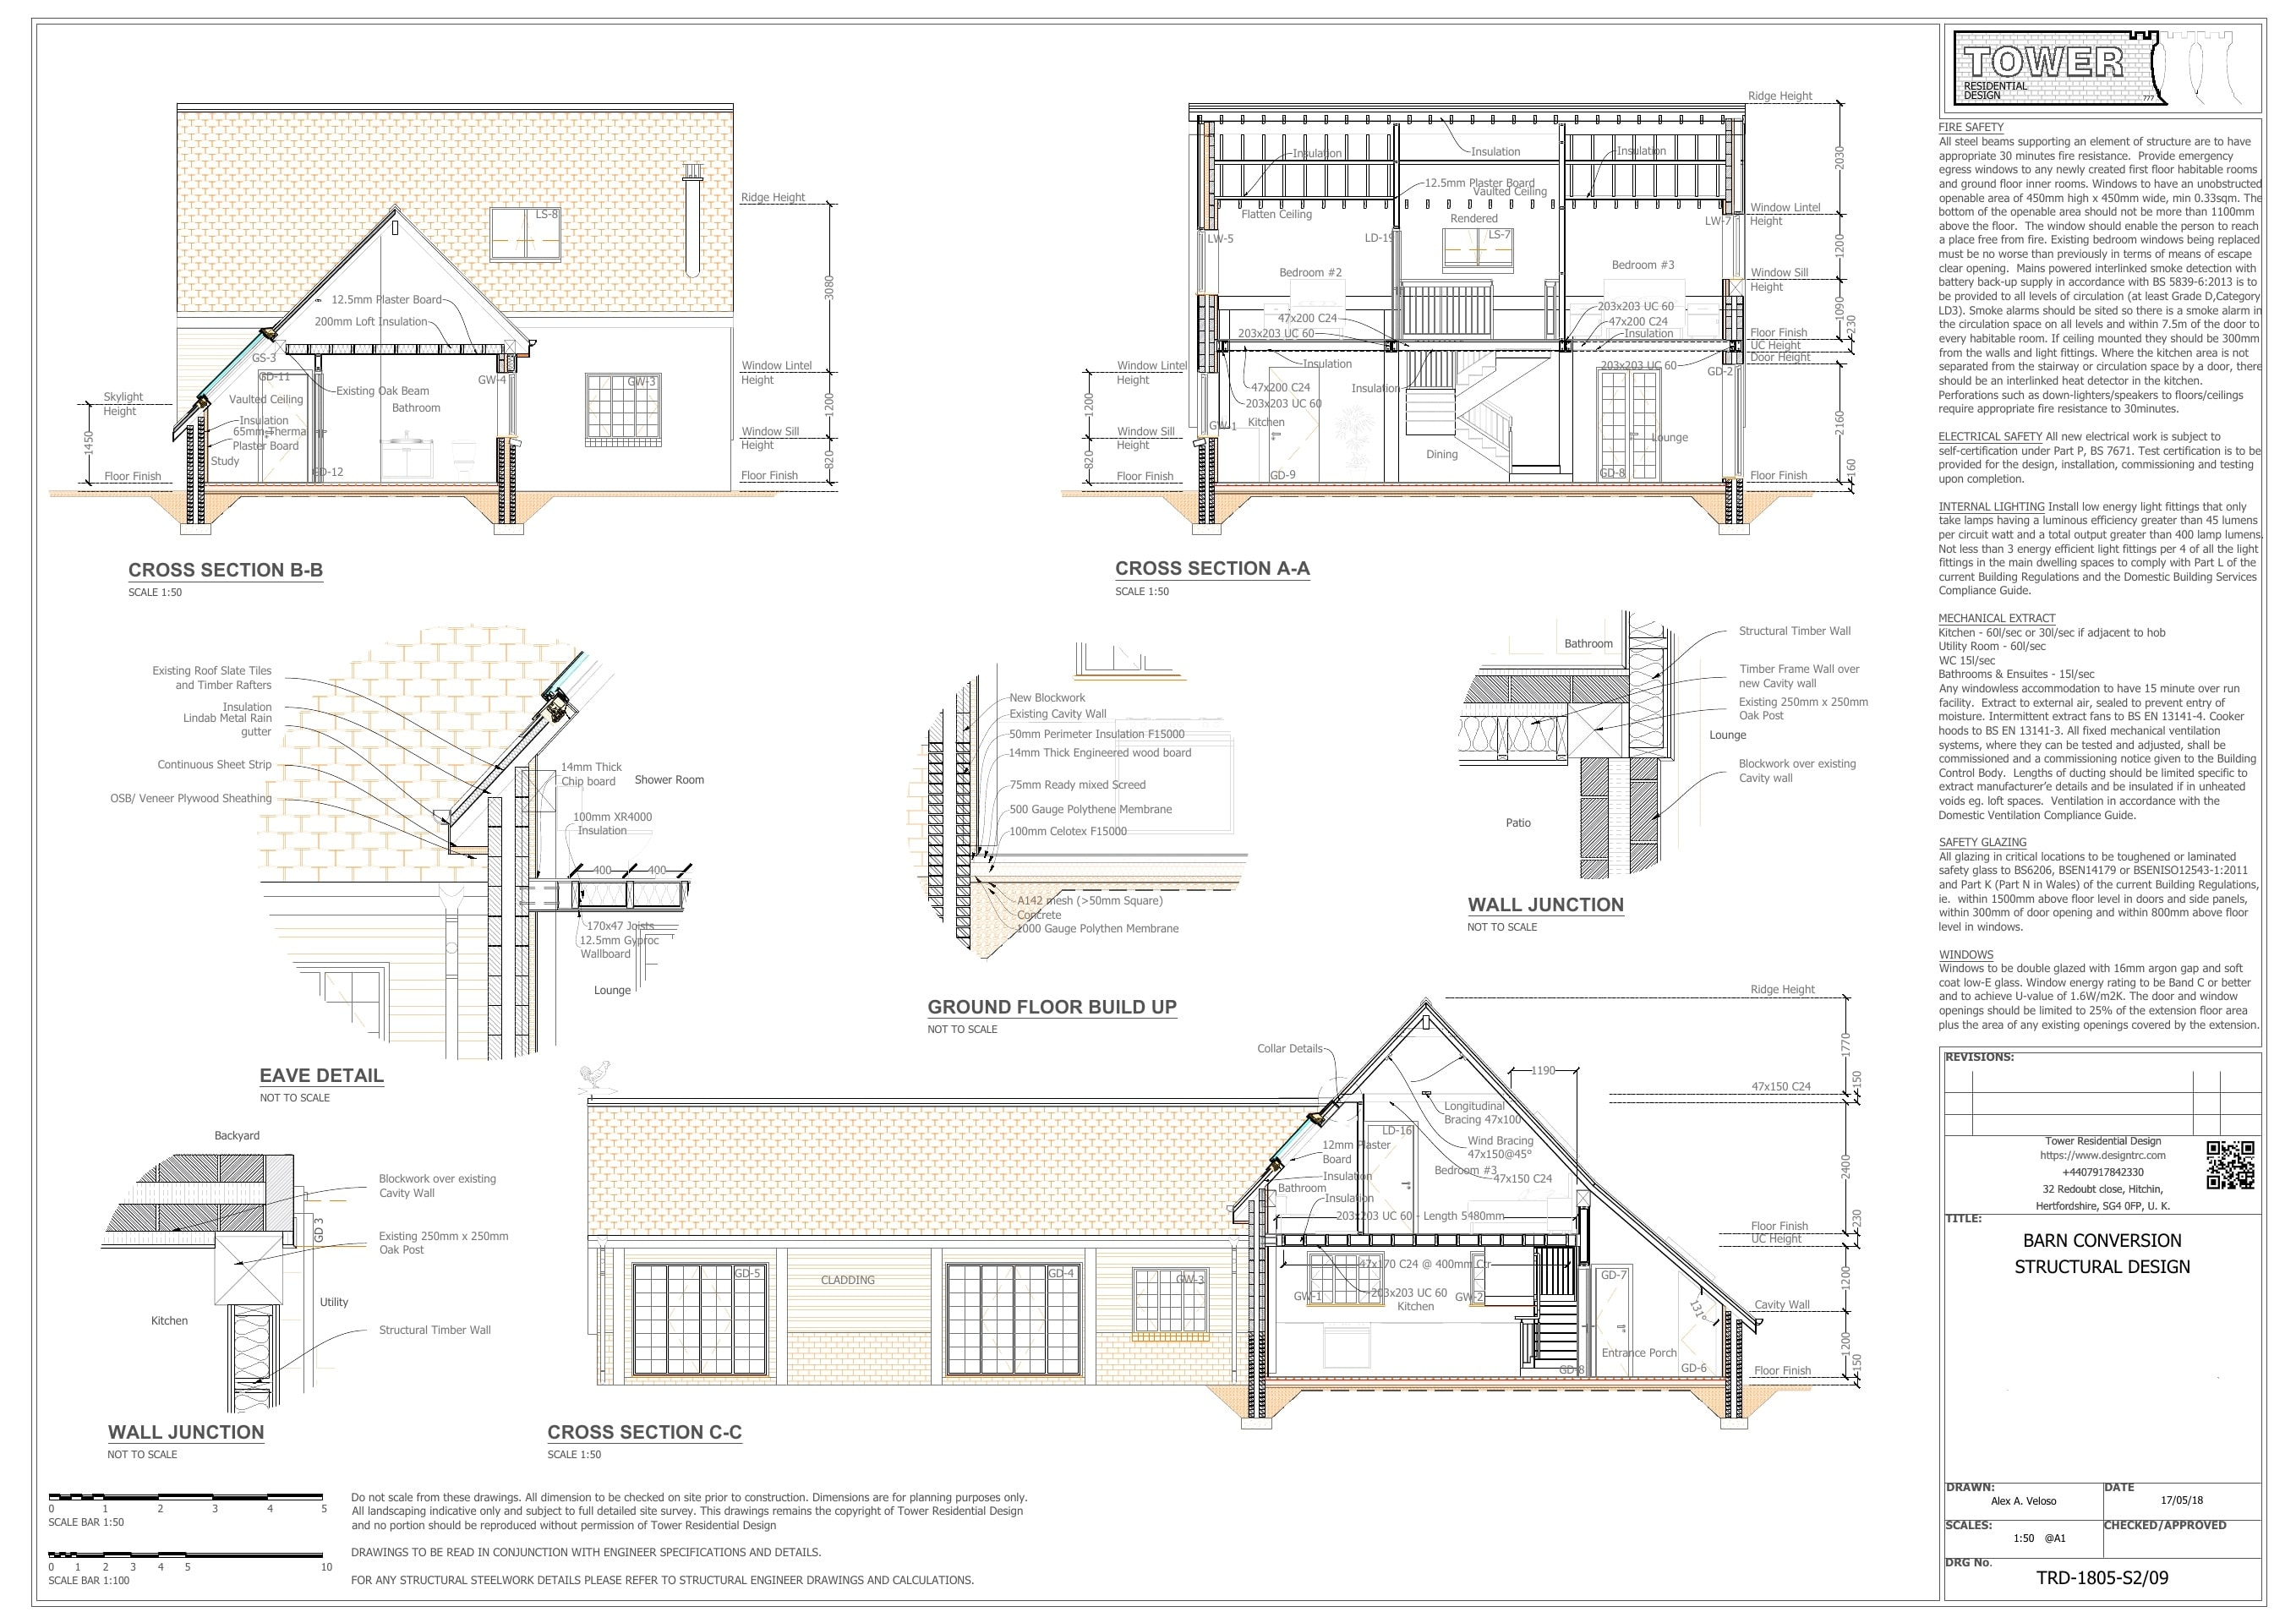 Buildign Regulation - Barn Conversion Services